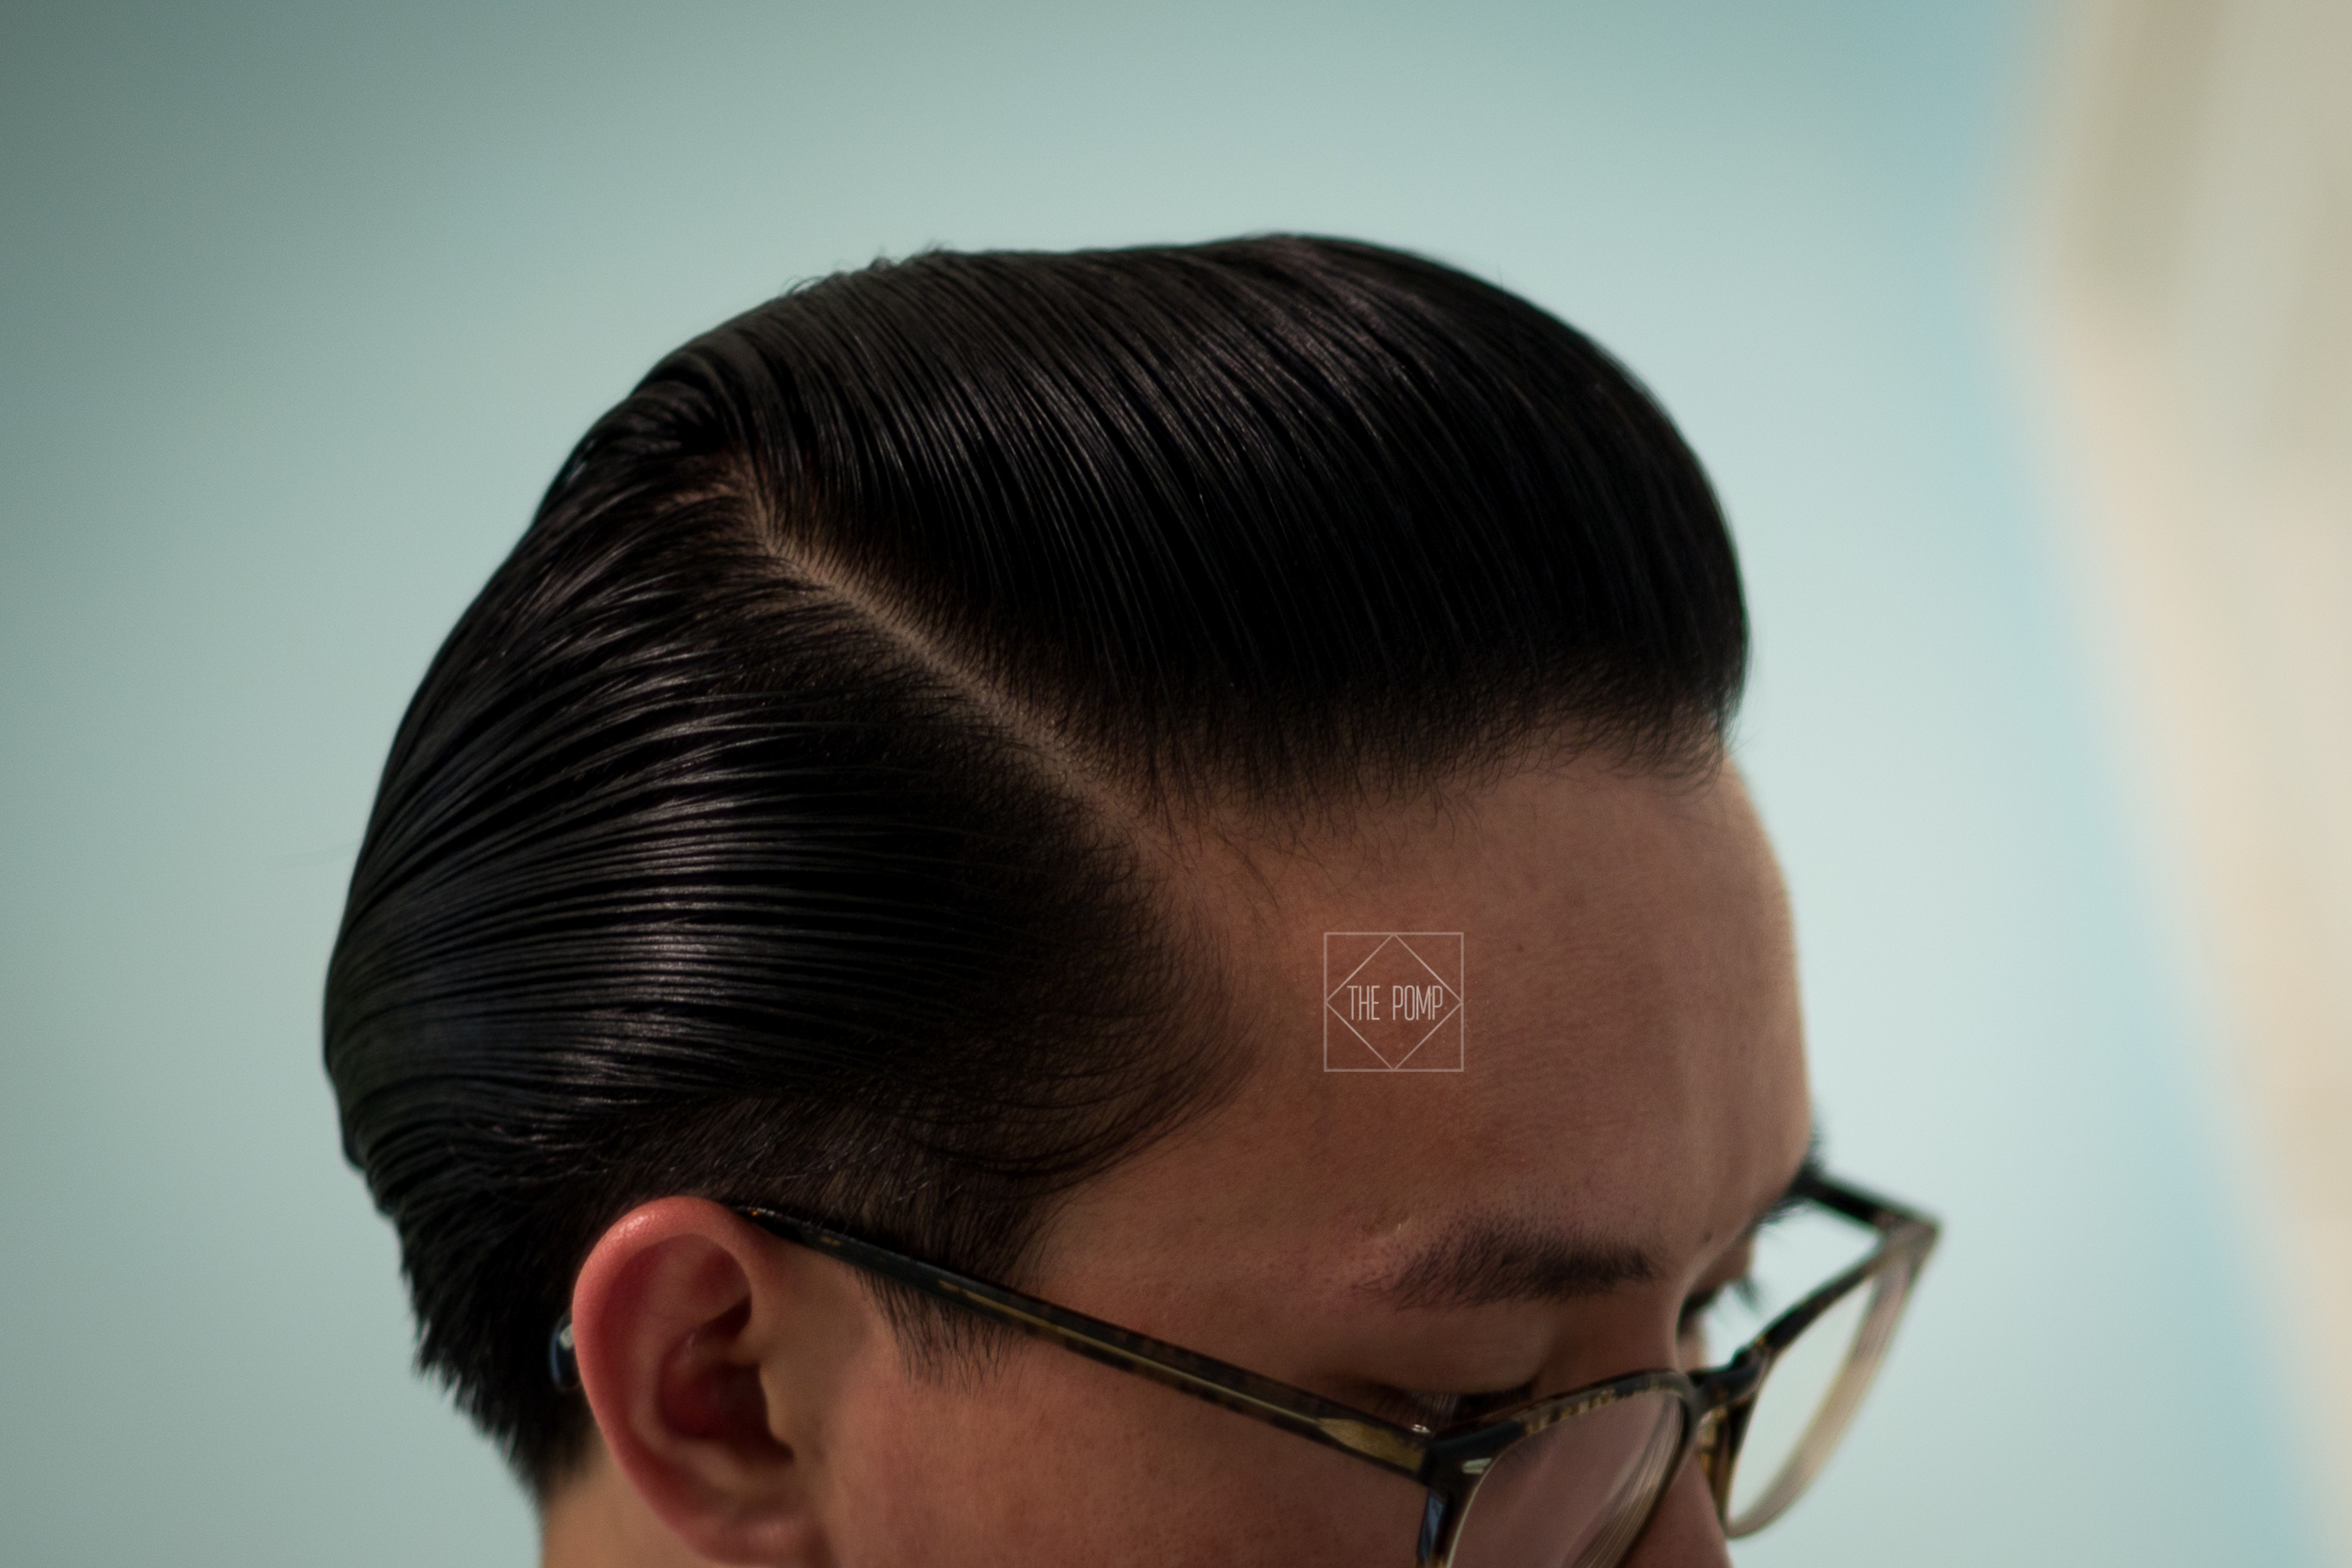 The Pomade final pomp part